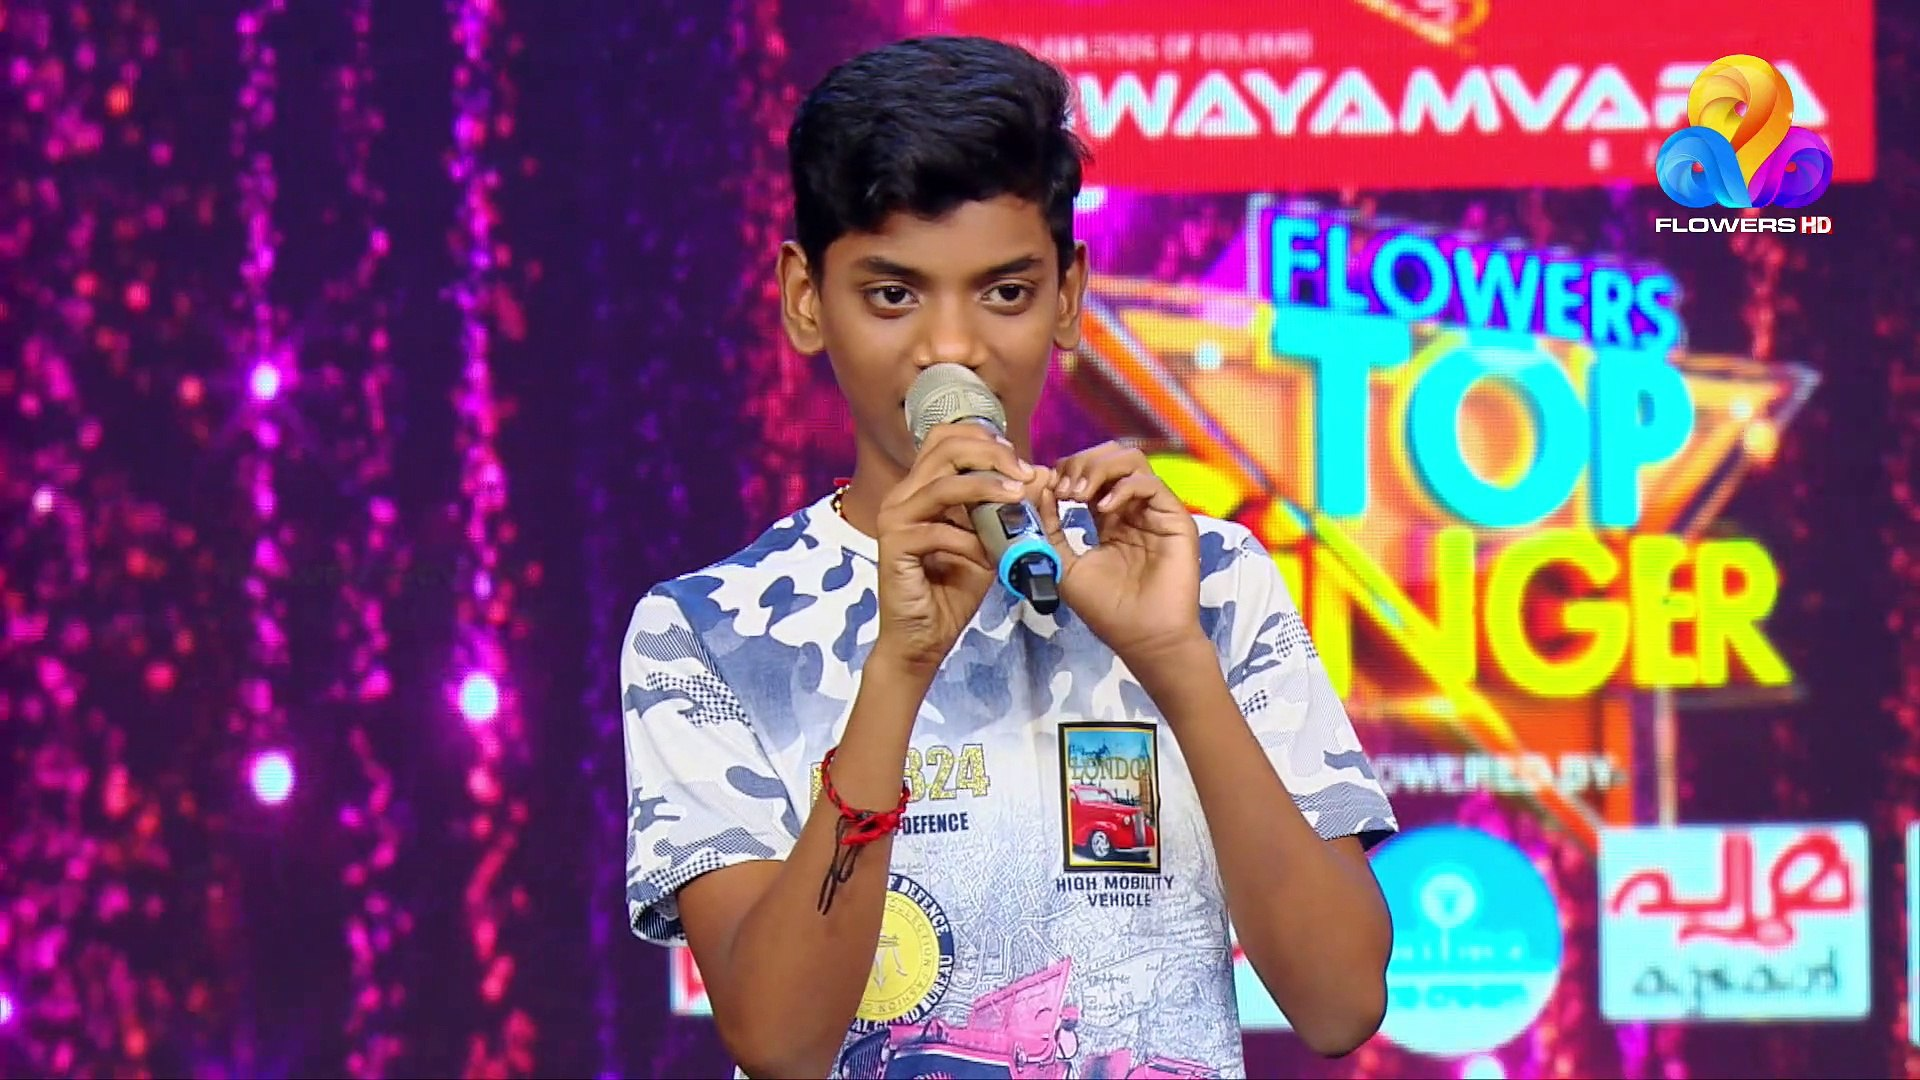 Flowers Top Singer   Musical Reality Show   Ep # 212